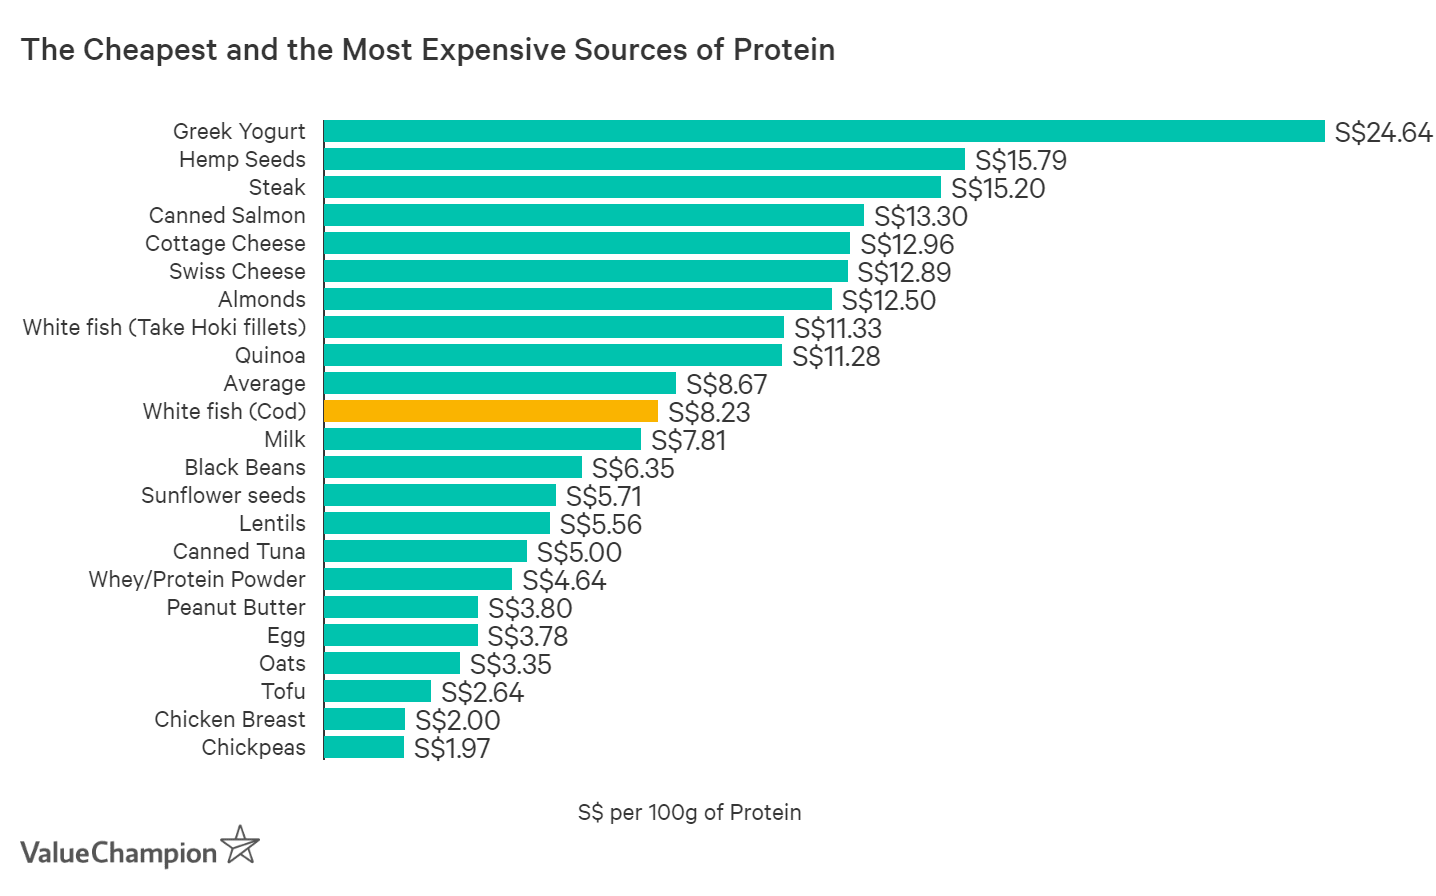 The most popular protein-heavy food items actually range from S$2 per 100 gram of protein to S$25